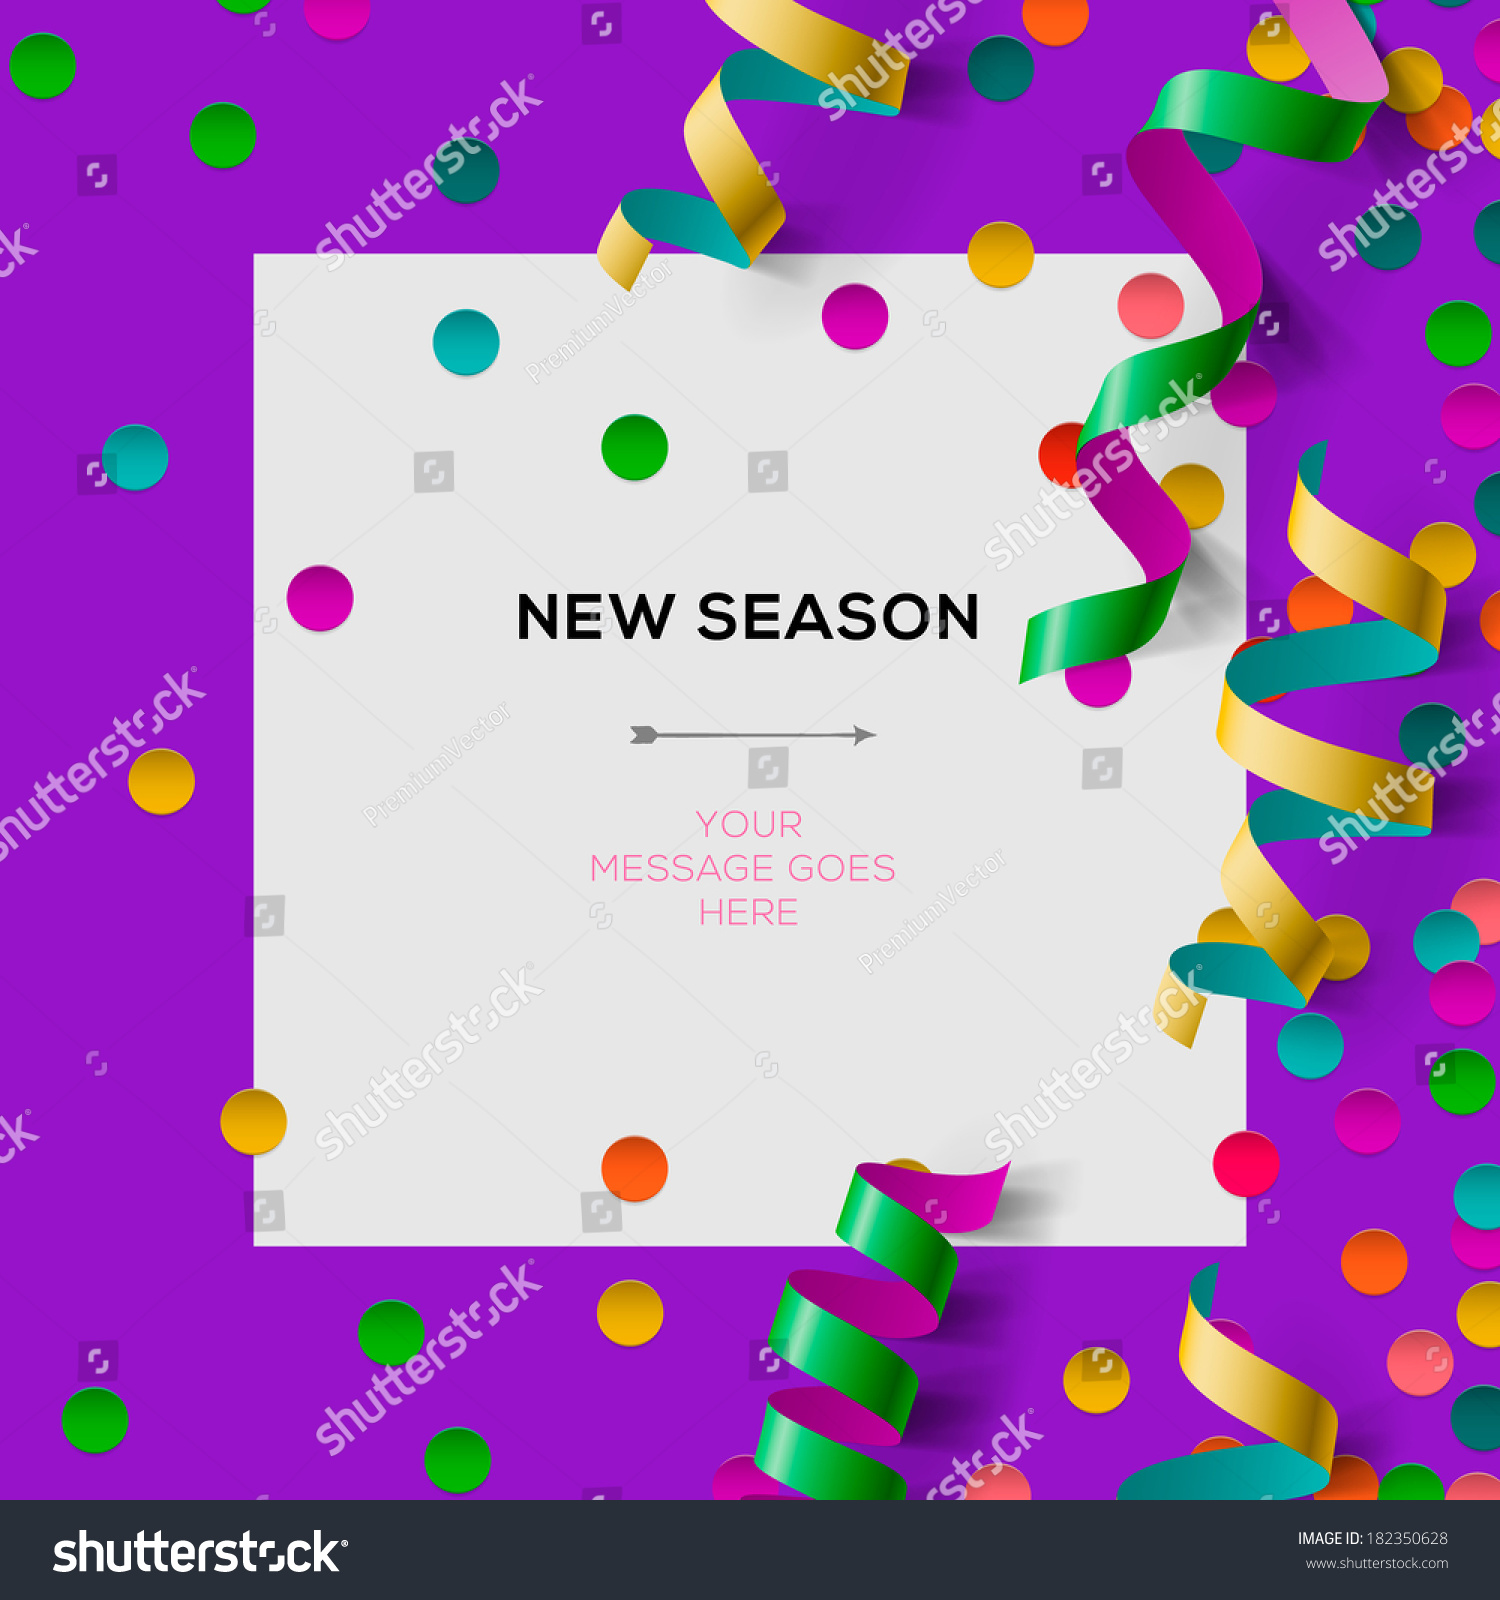 new season invitation template party confetti stock vector new season invitation template party confetti office party vector illustration